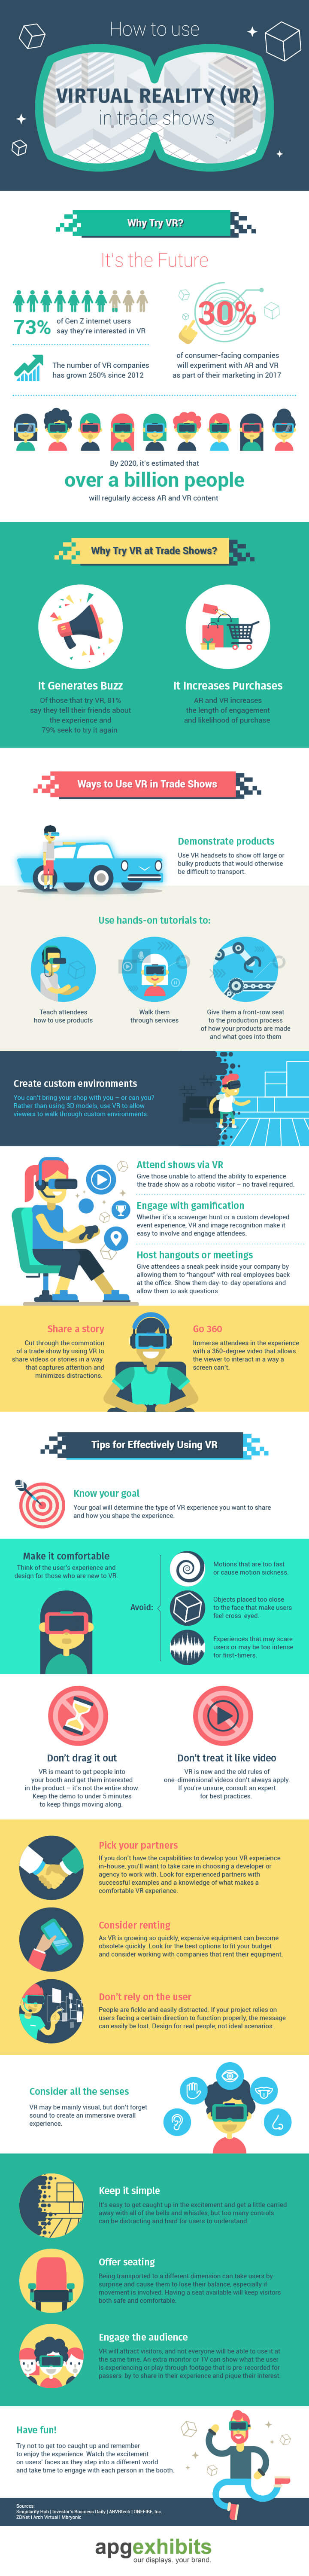 Virtual_Reality-in-trade-shows-infographic-plaza